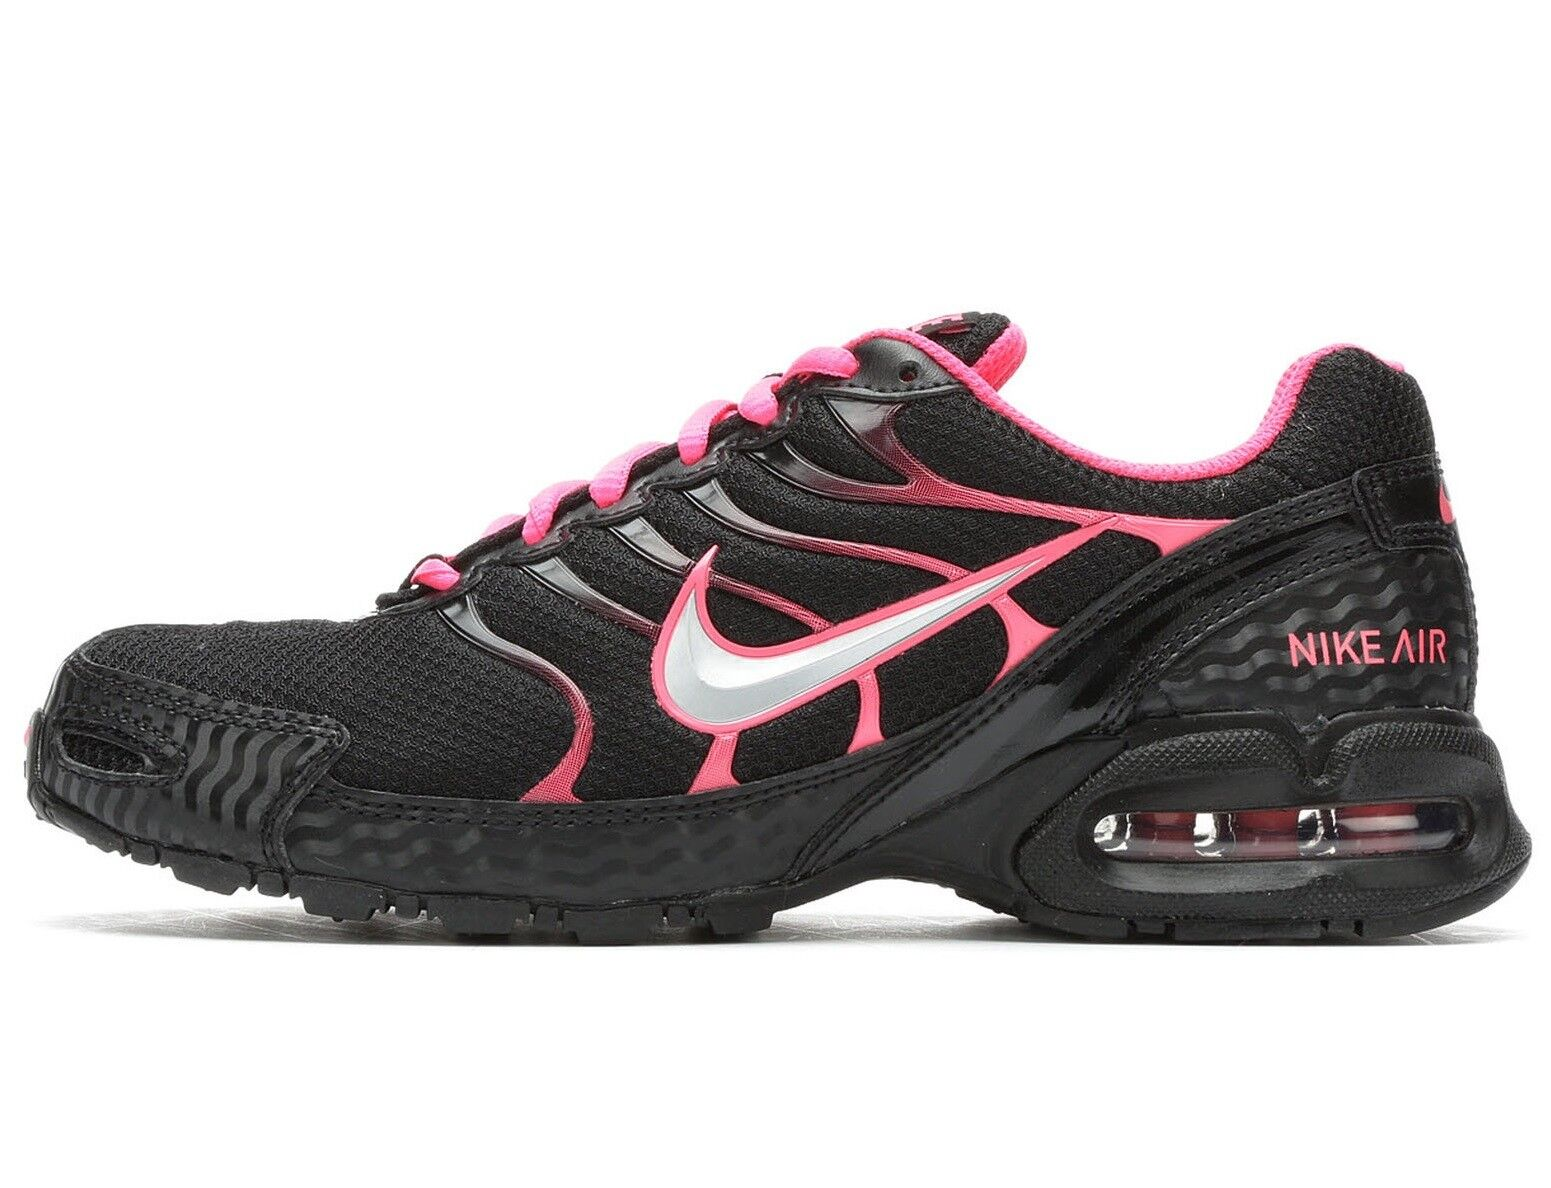 Nike Air Max Torch 4 Womens 343851-006 Black Pink Flash Running Shoes Size 10